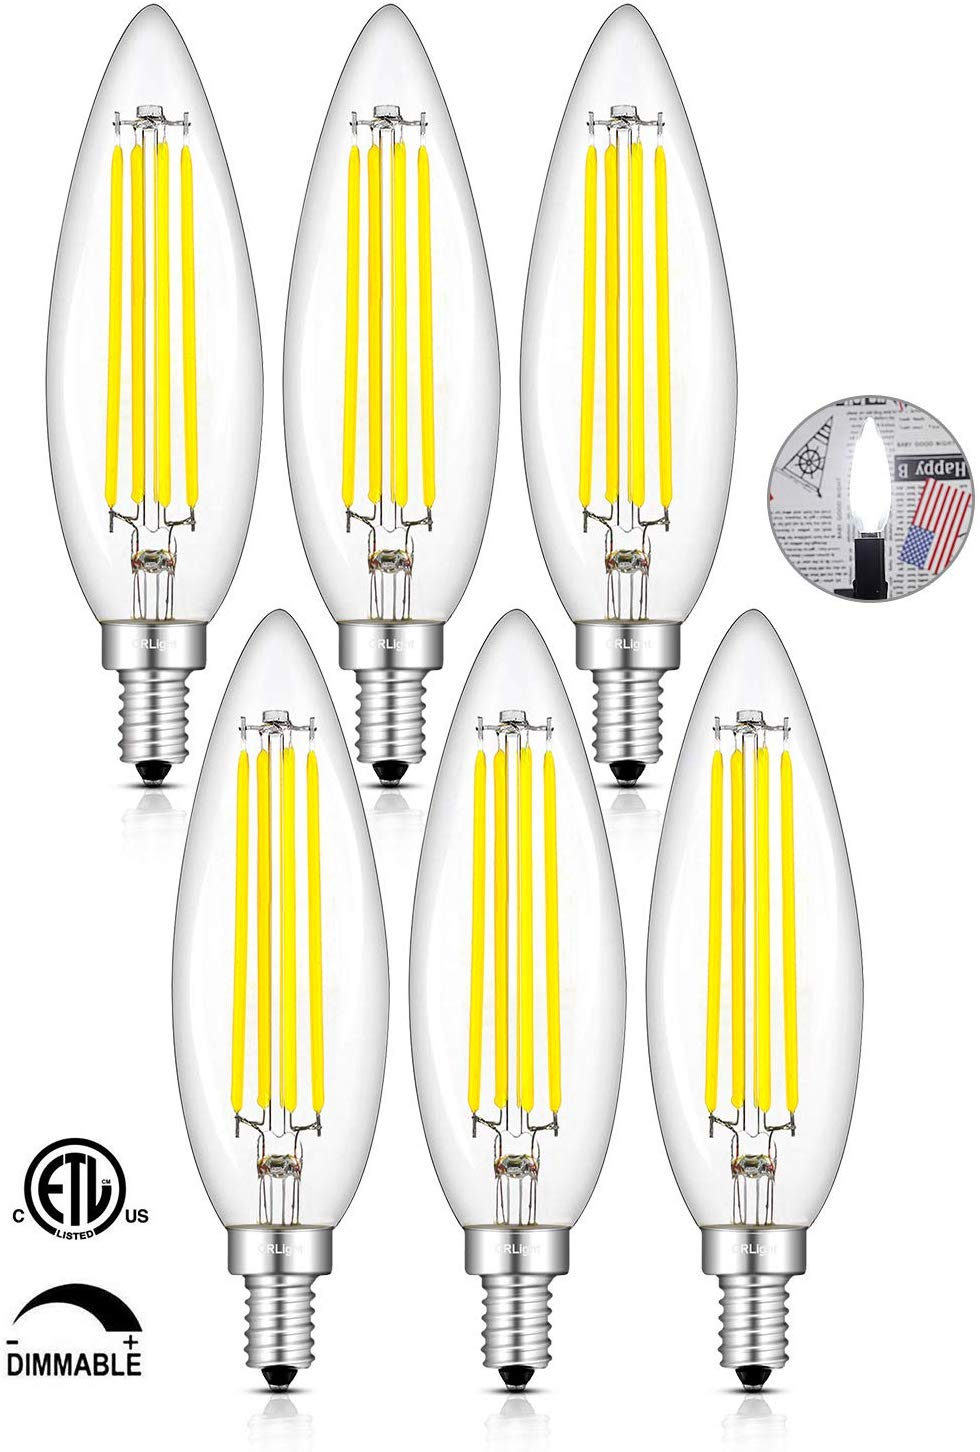 CRLight 8W 800LM Dimmable LED Filament Retro Candelabra Bulbs 5000K Daylight White, E12 Base, 80W Incandescent Equivalent, Clear Glass Torpedo Shape, 6 Pack